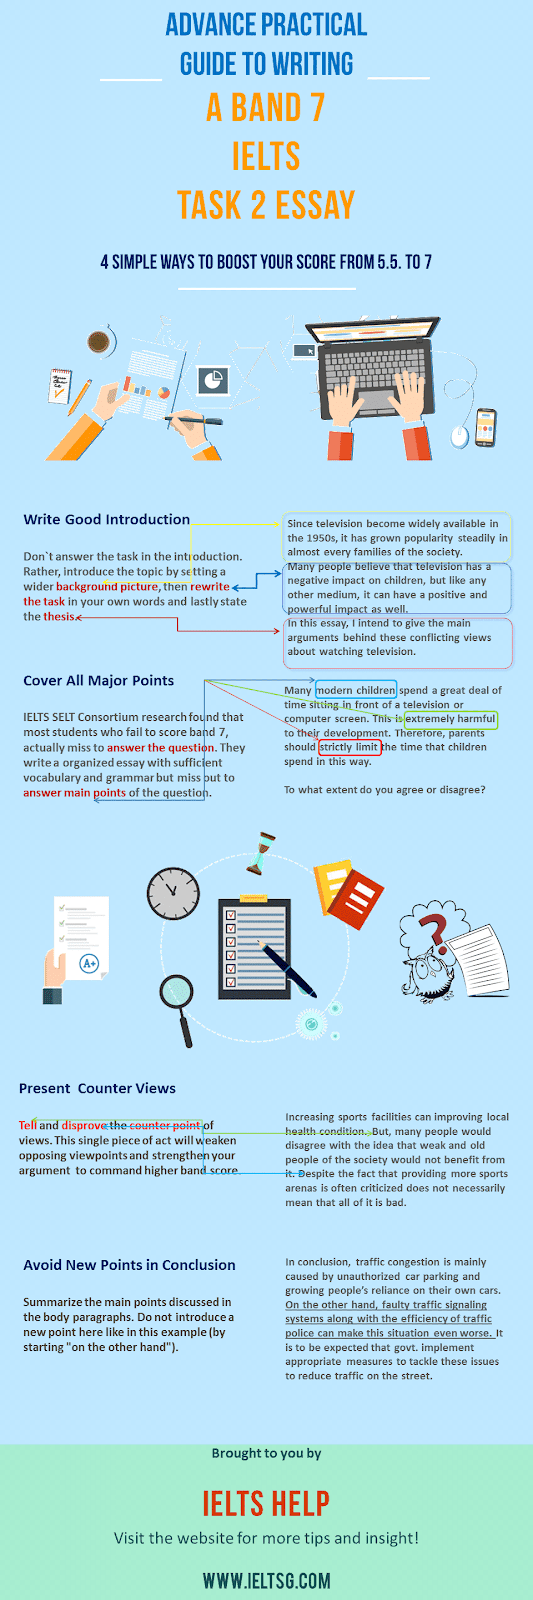 how to improve IELTS writing task 2 response